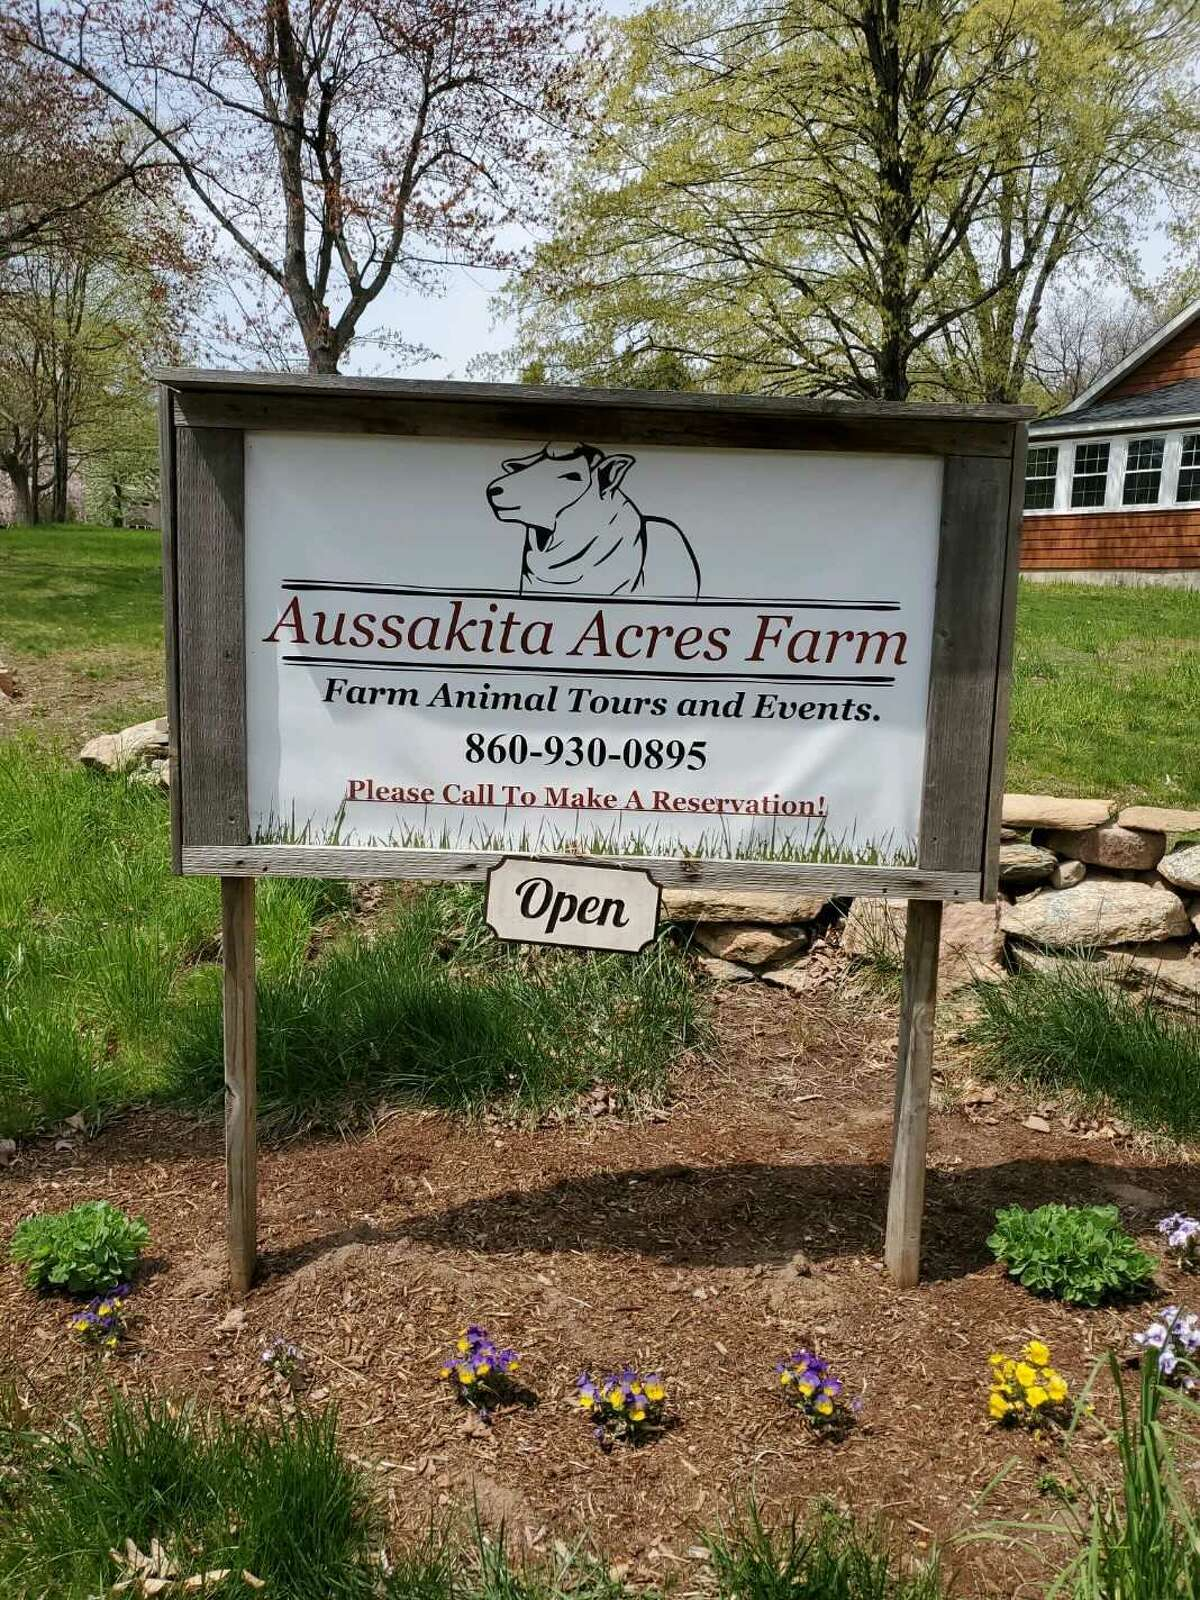 AussakitaAcres Farm in Manchester, Conn. not only has goats on site, it also has alpacas and other farm animals that guests can interact with.